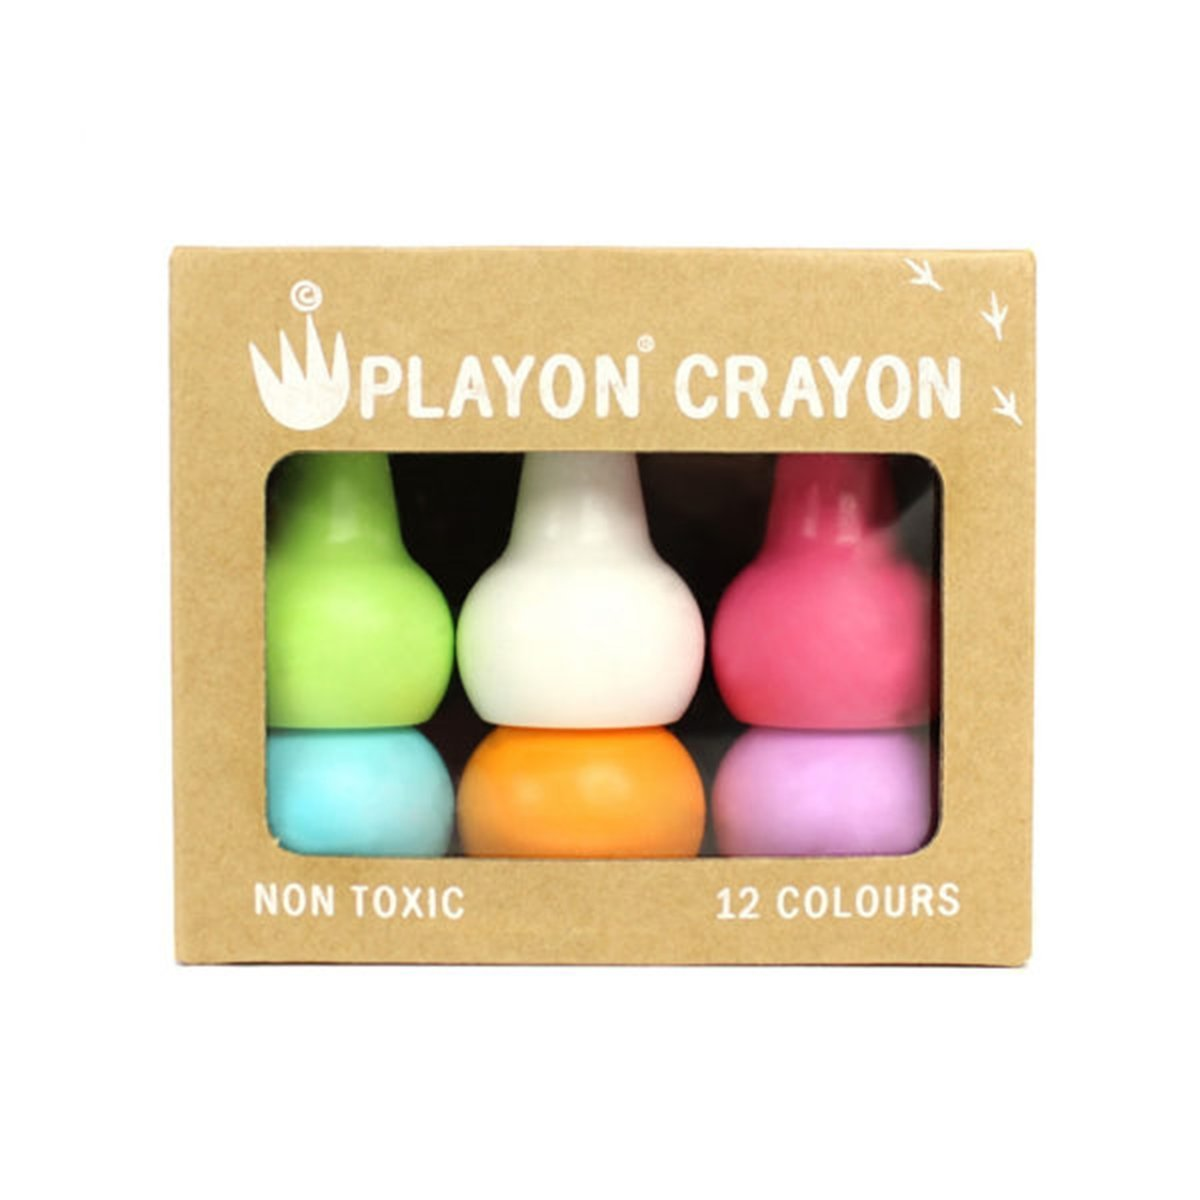 Non-Toxic Toddler Crayons - Easy to Hold & Stackable - Pastel Color Set IPPINKA